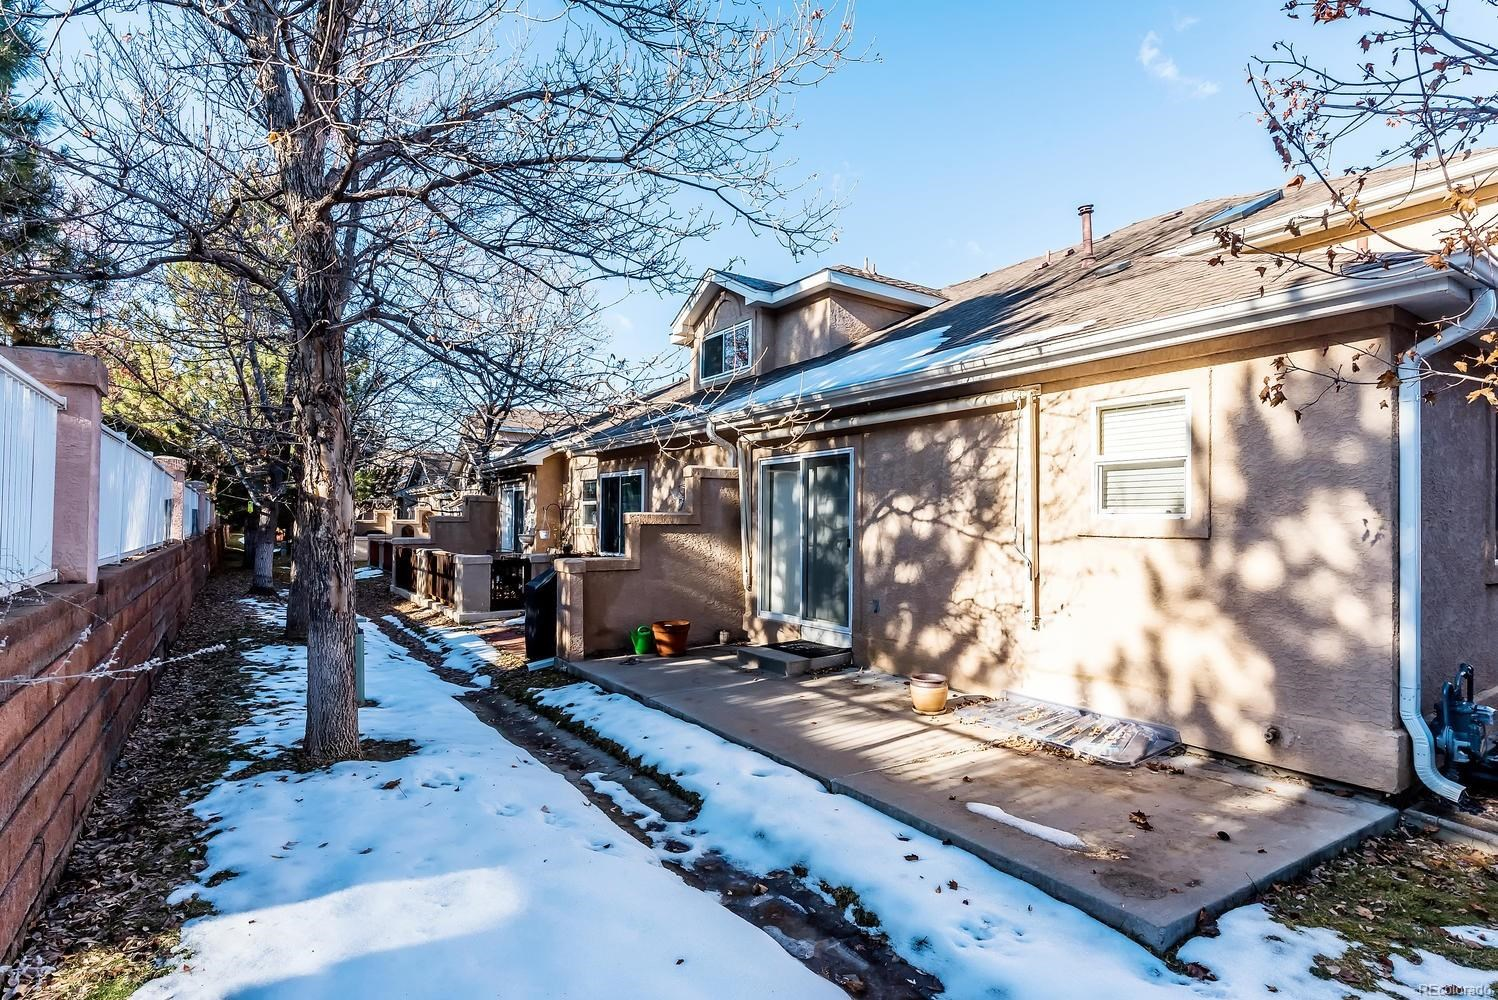 MLS# 6845218 - 27 - 2478 S Scranton Way, Aurora, CO 80014